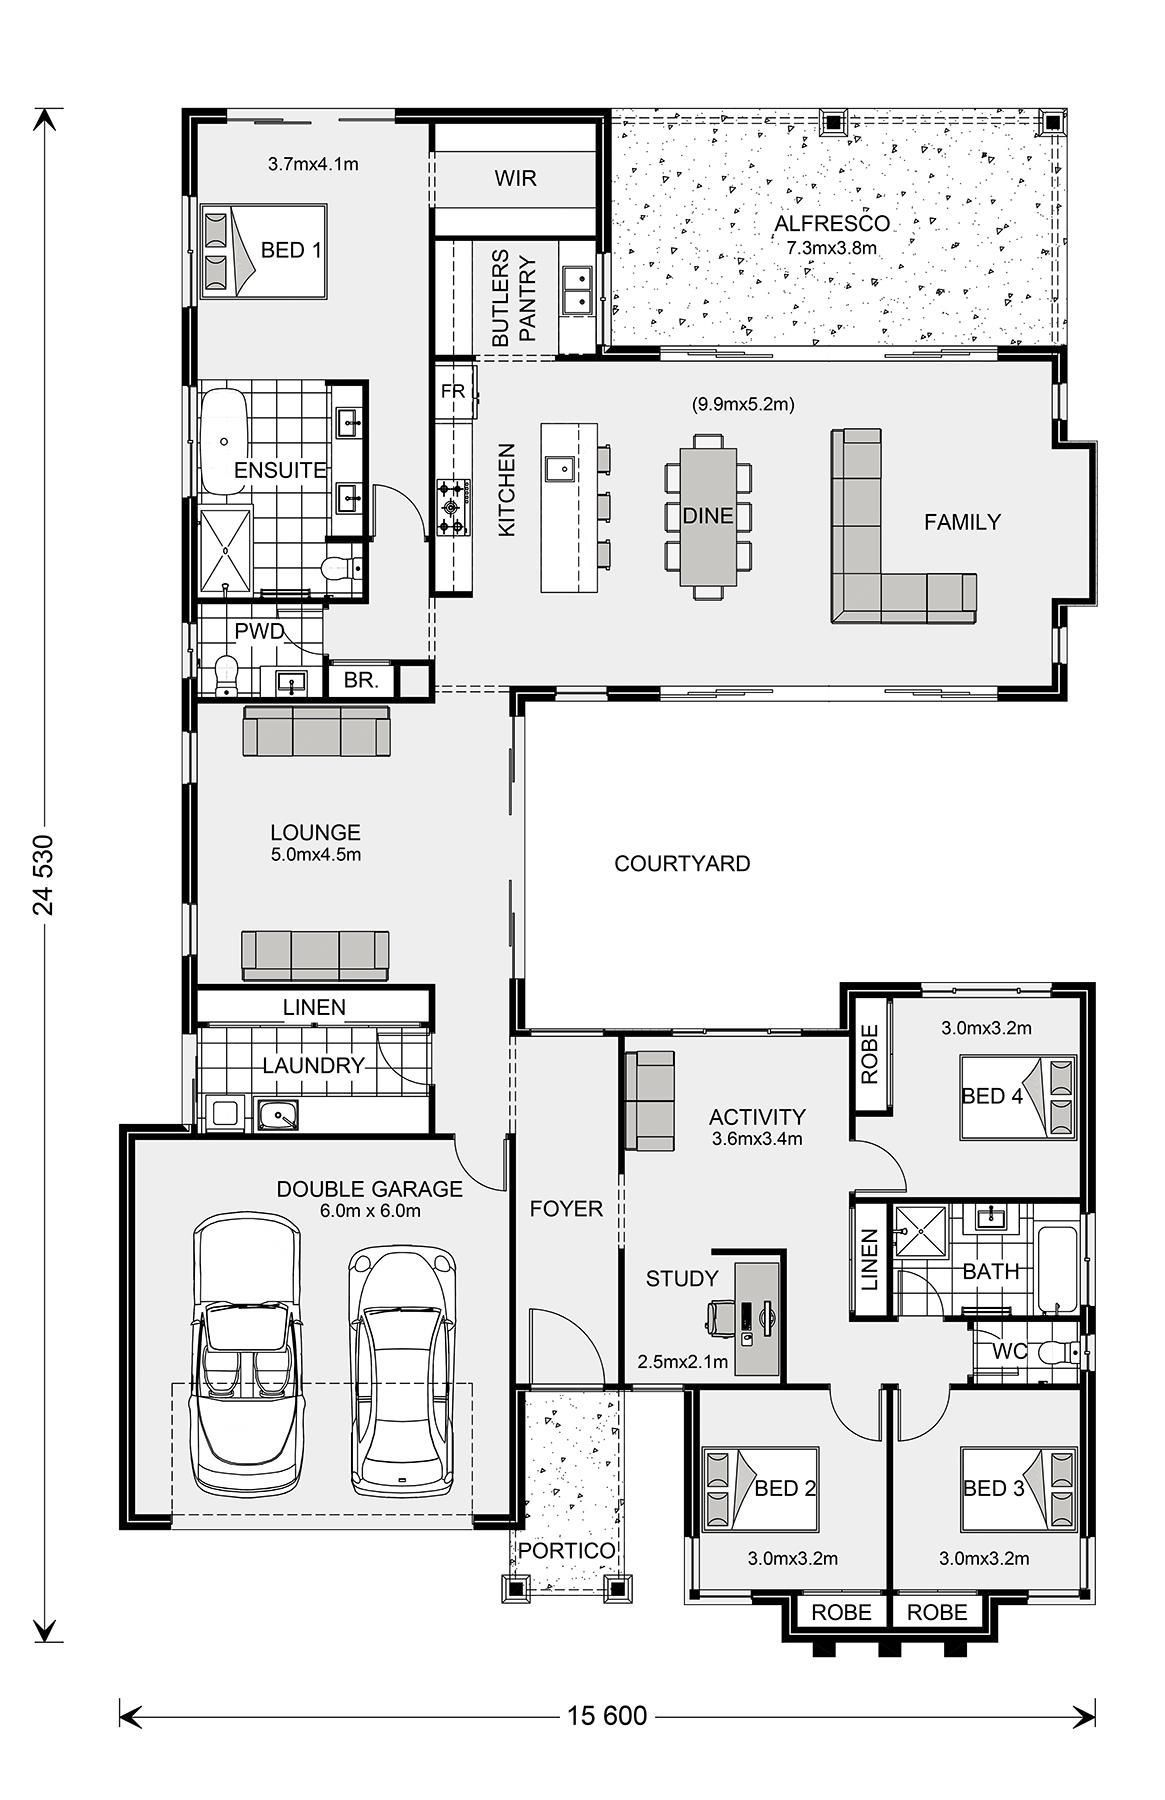 House Plans For Building 2021 Home Design Floor Plans Dream House Plans New House Plans